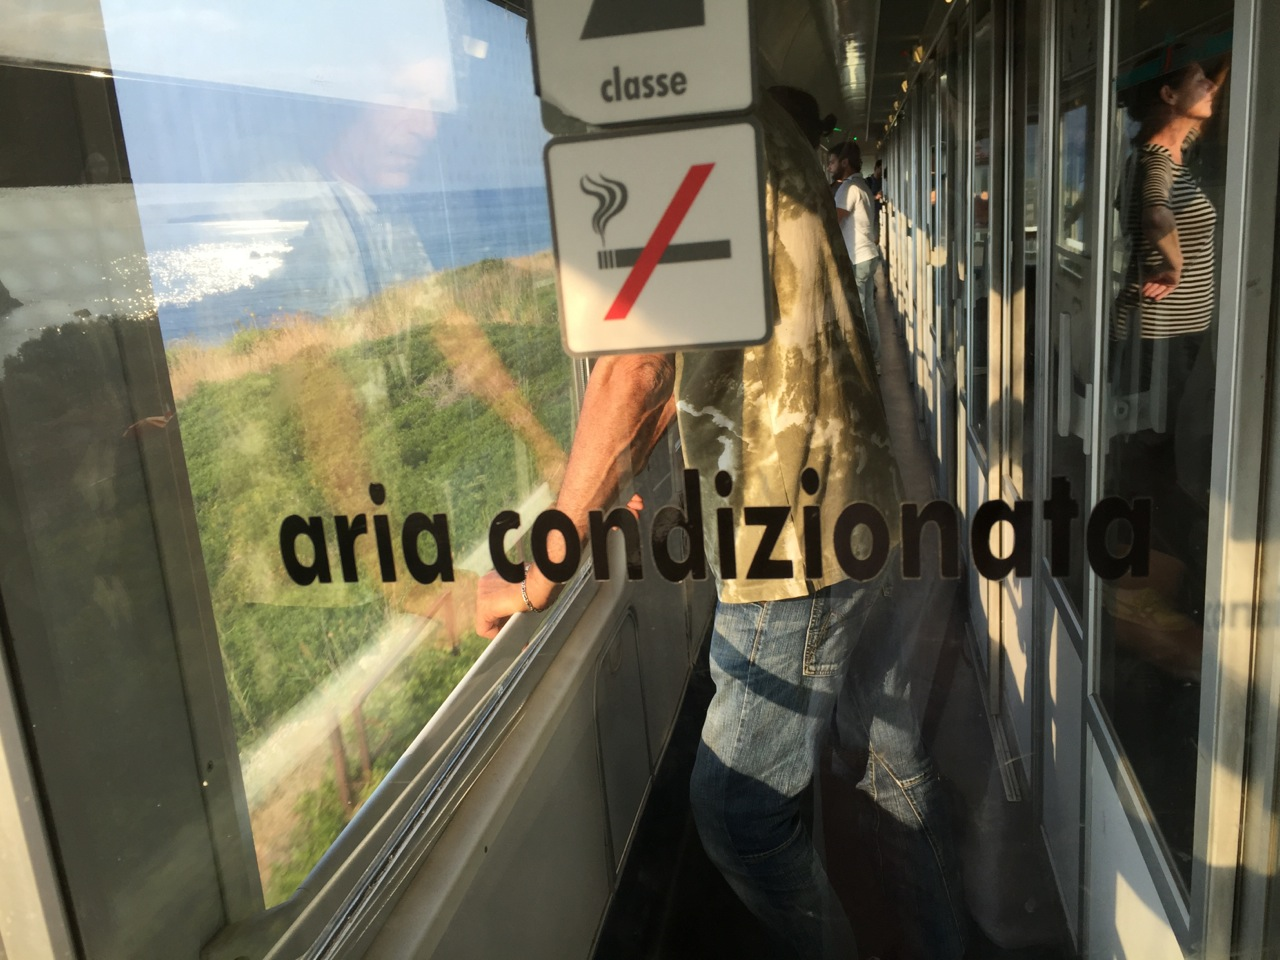 The train from Naples to Sicily was supposed to be air-conditioned, but it wasn't working. Smoking is not allowed on the trains, but people smoked at each stop in the vestibules.